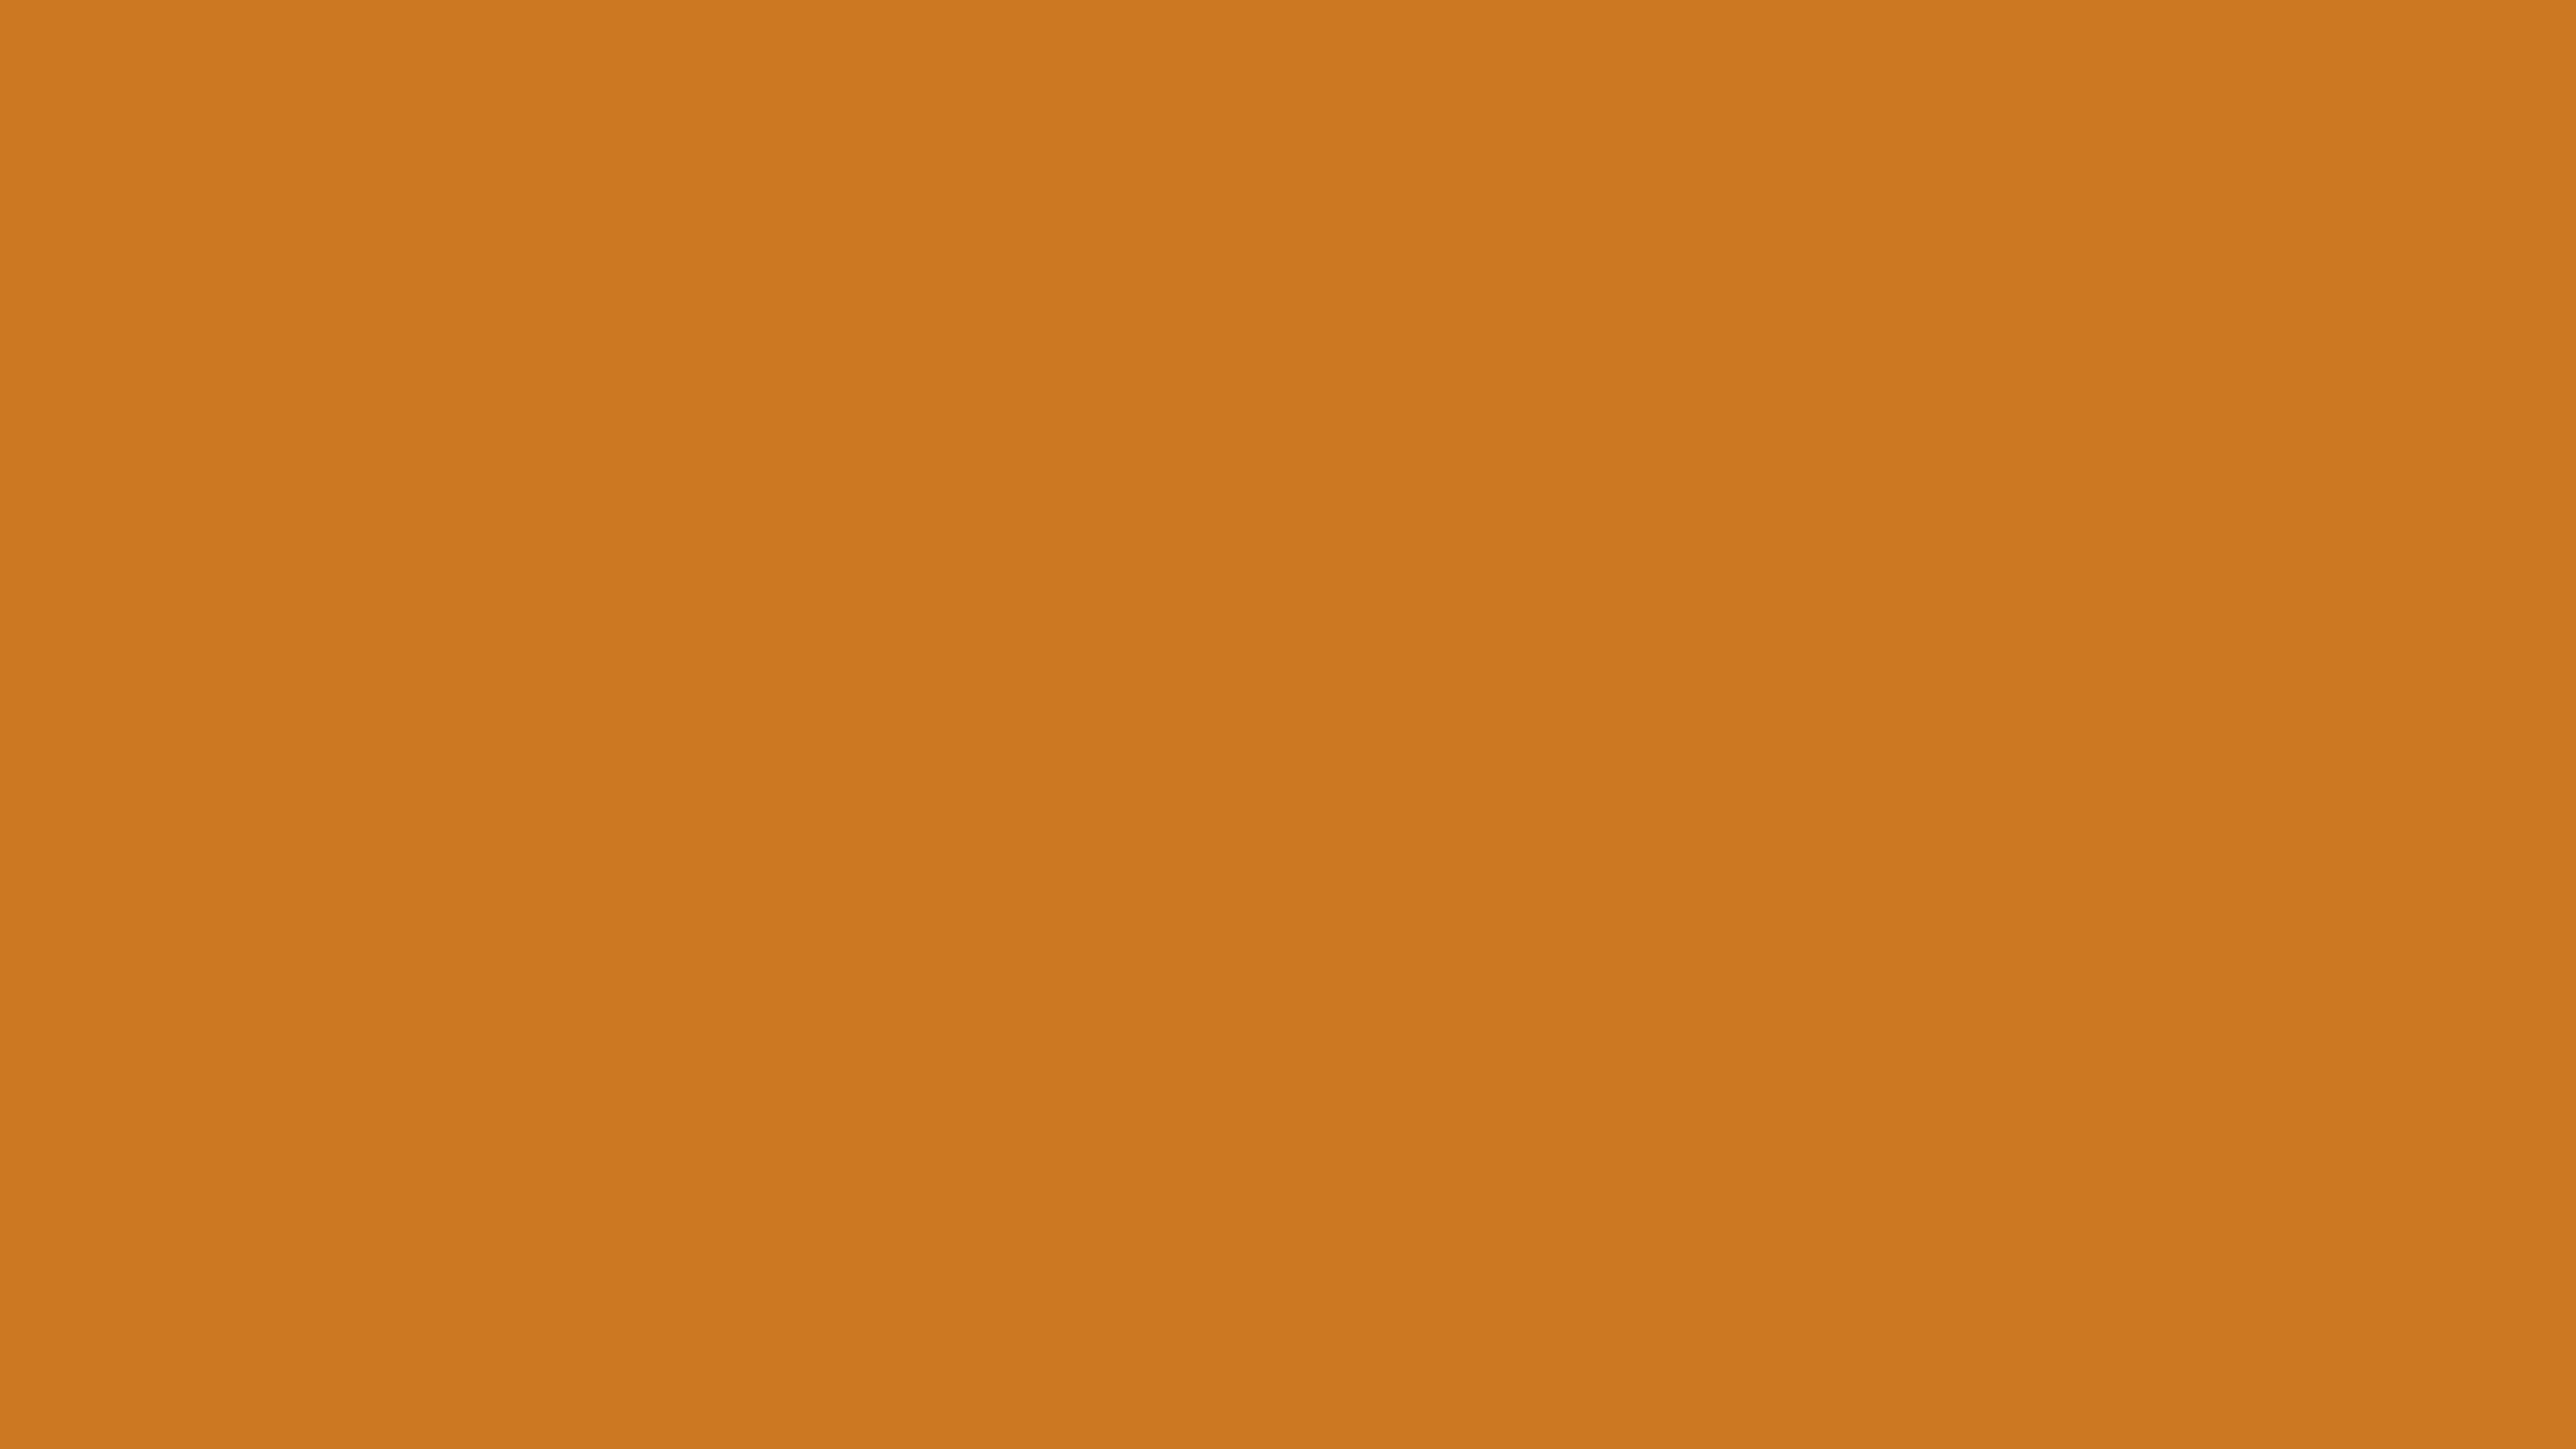 7680x4320 Ochre Solid Color Background